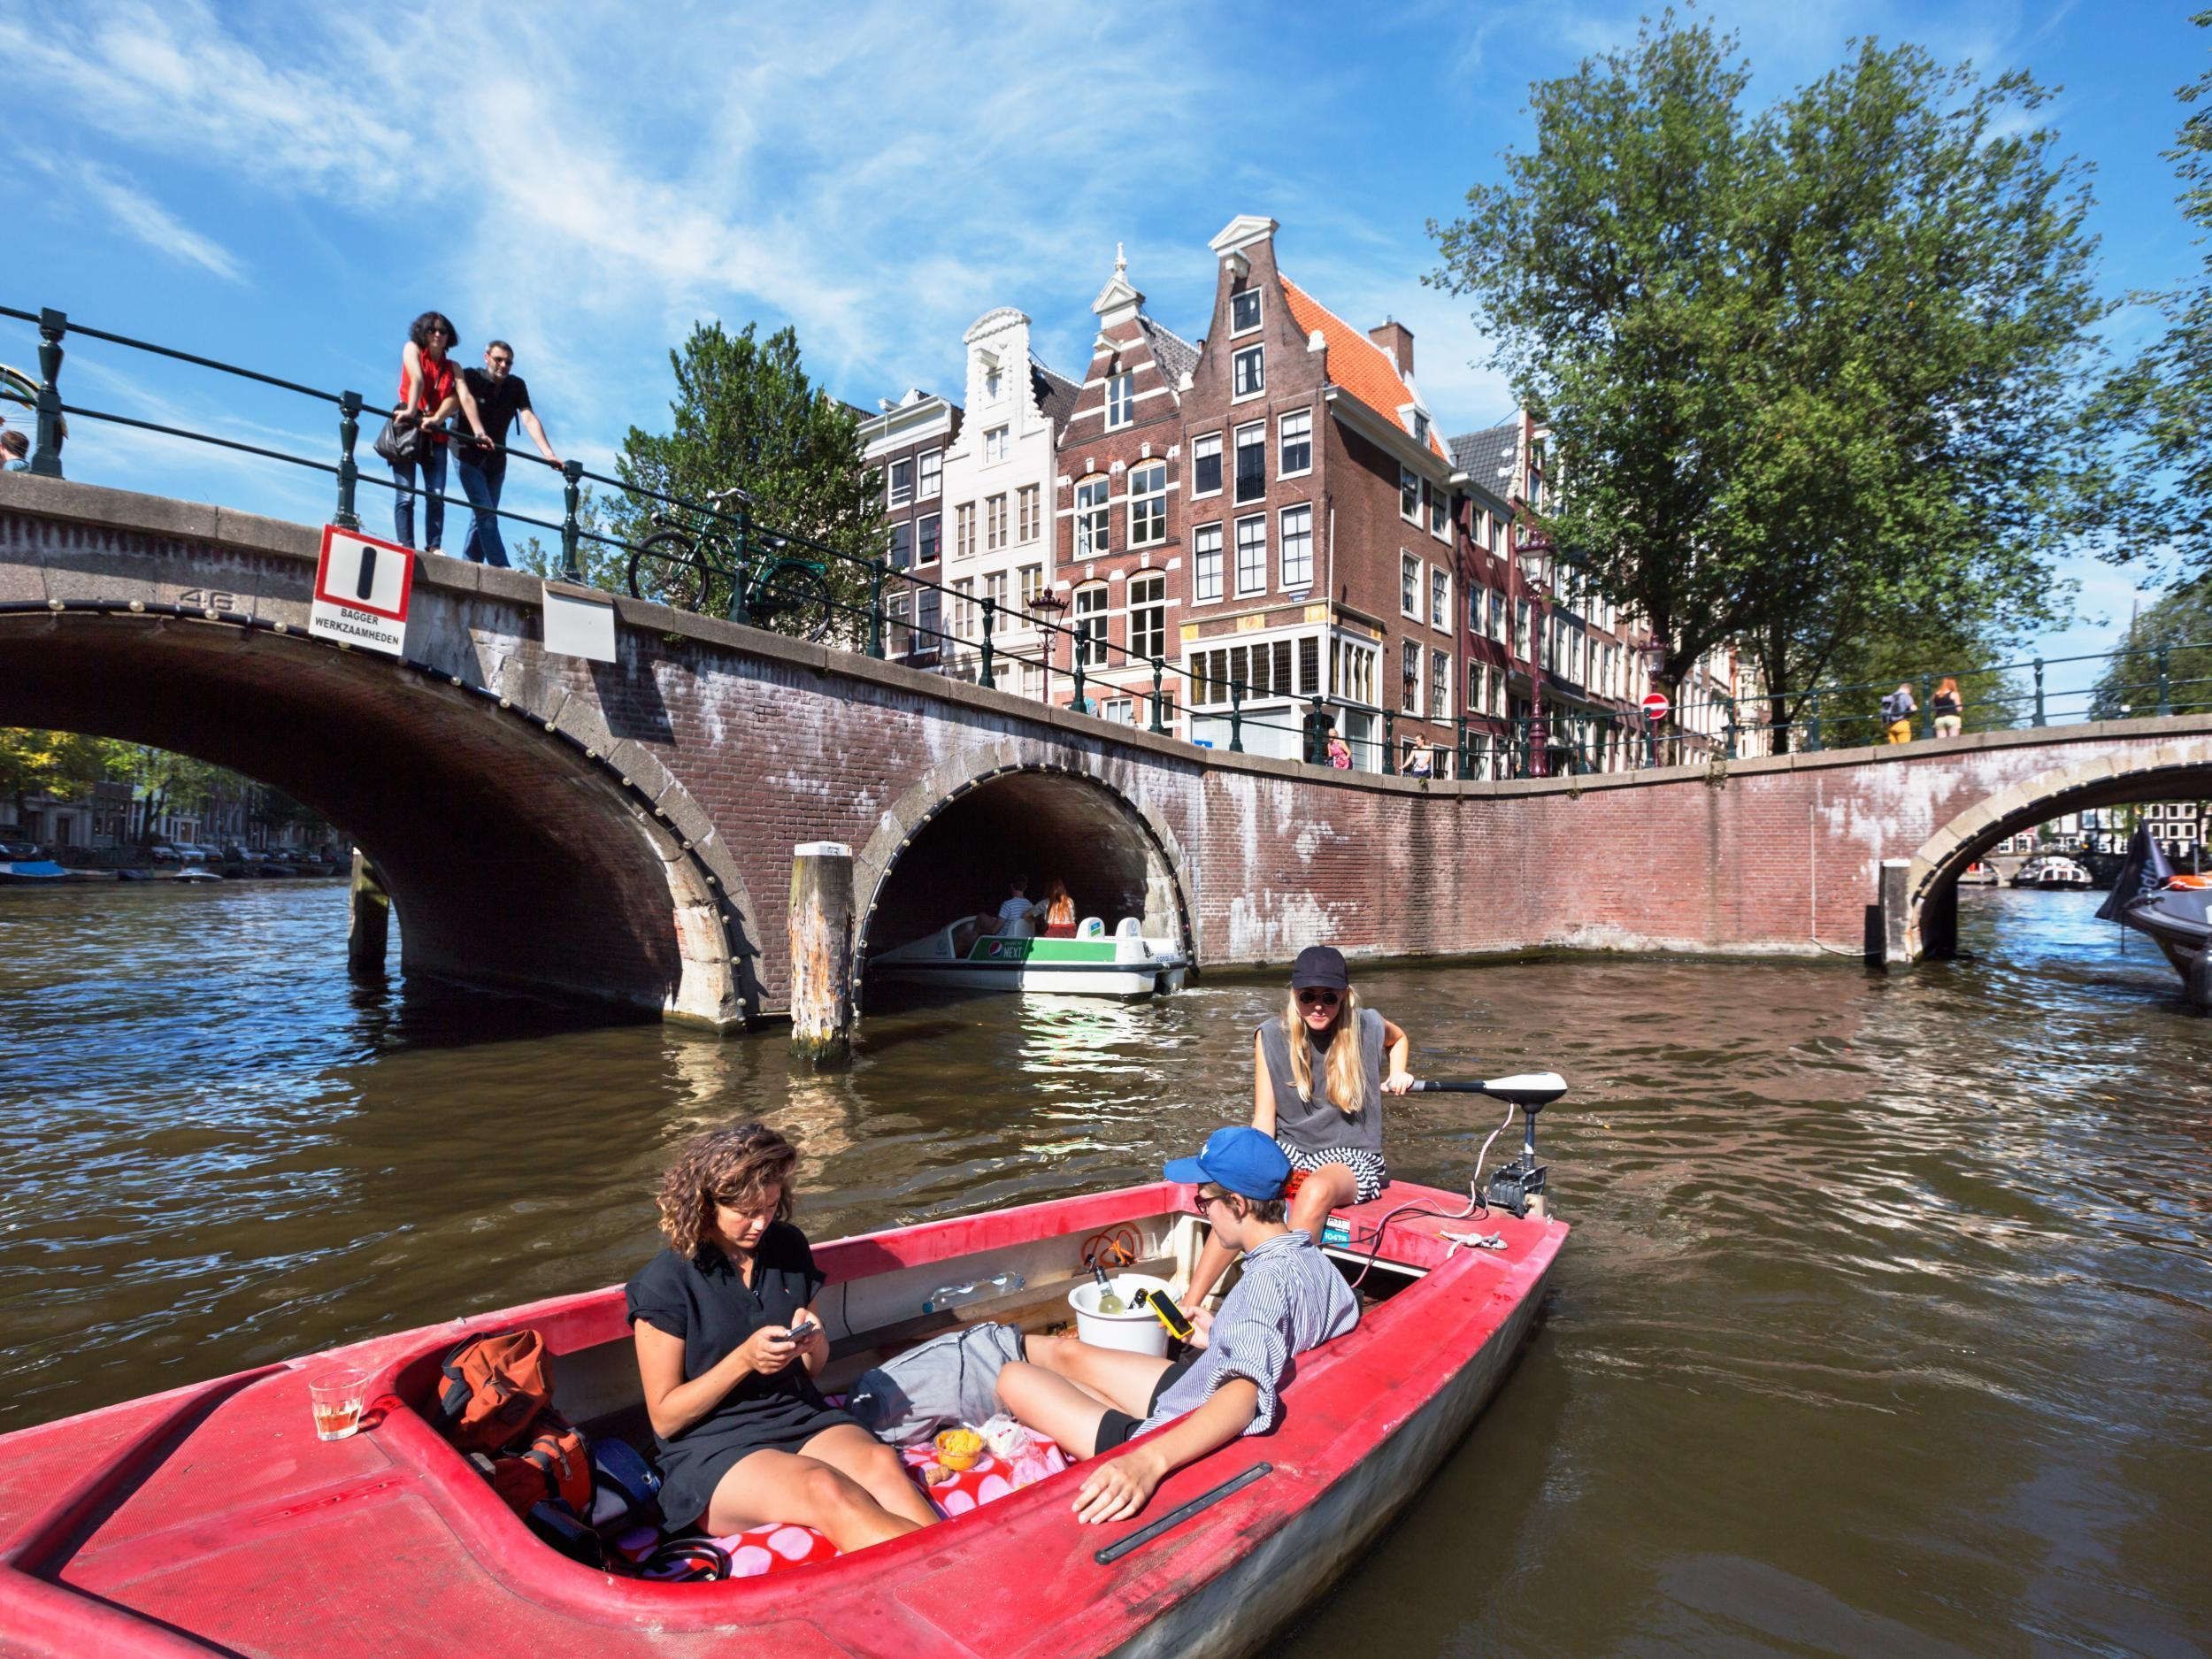 Amsterdam hotels 10 best places to stay the independent for Hotel amsterdam economici piazza dam